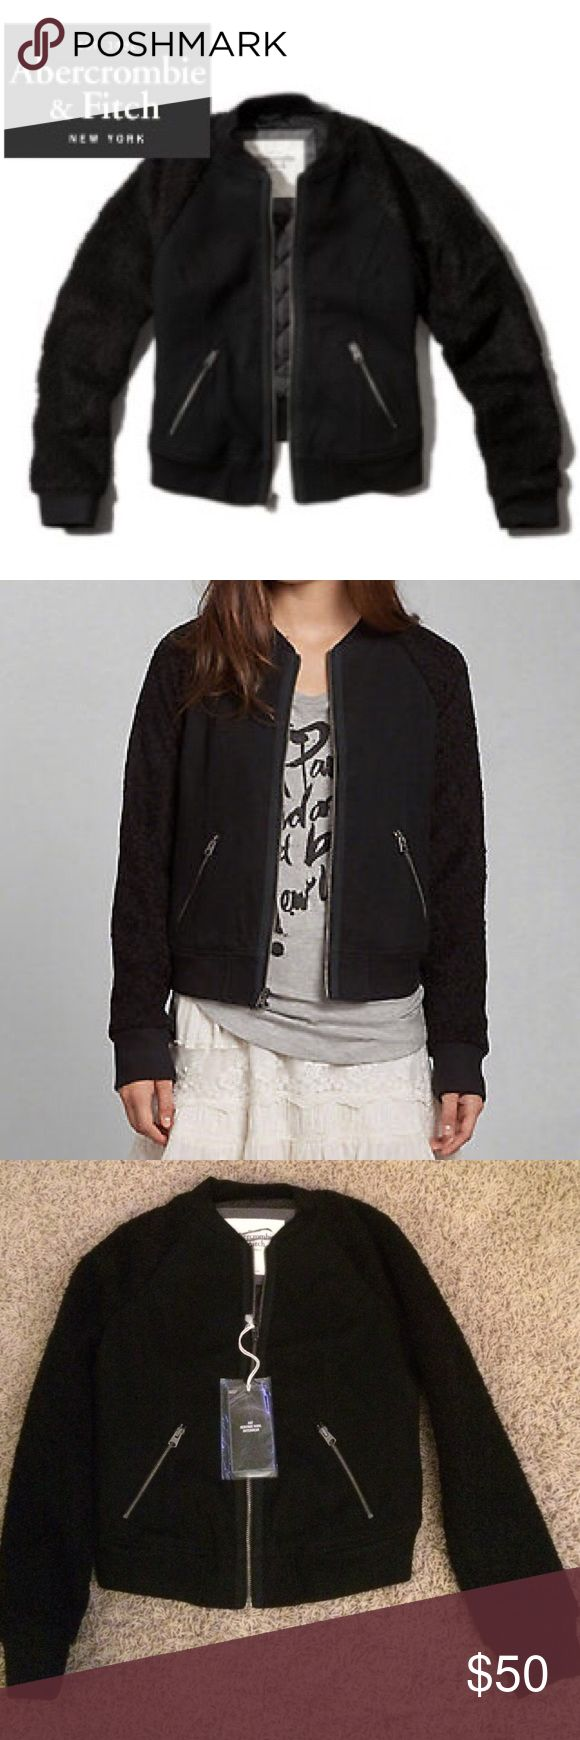 New Abercrombie and Fitch Shannon Bomber Jacket Abercrombie and Fitch Heritage Wool Shannon Bomber Jacket •New with tags •Size Small •Offers are welcome 🎉  Check out my other listings- Nike, adidas, Michael Kors, Coach, Wildfox, Victoria's Secret, PINK, Under Armour, True Religion and more! Abercrombie & Fitch Jackets & Coats Utility Jackets